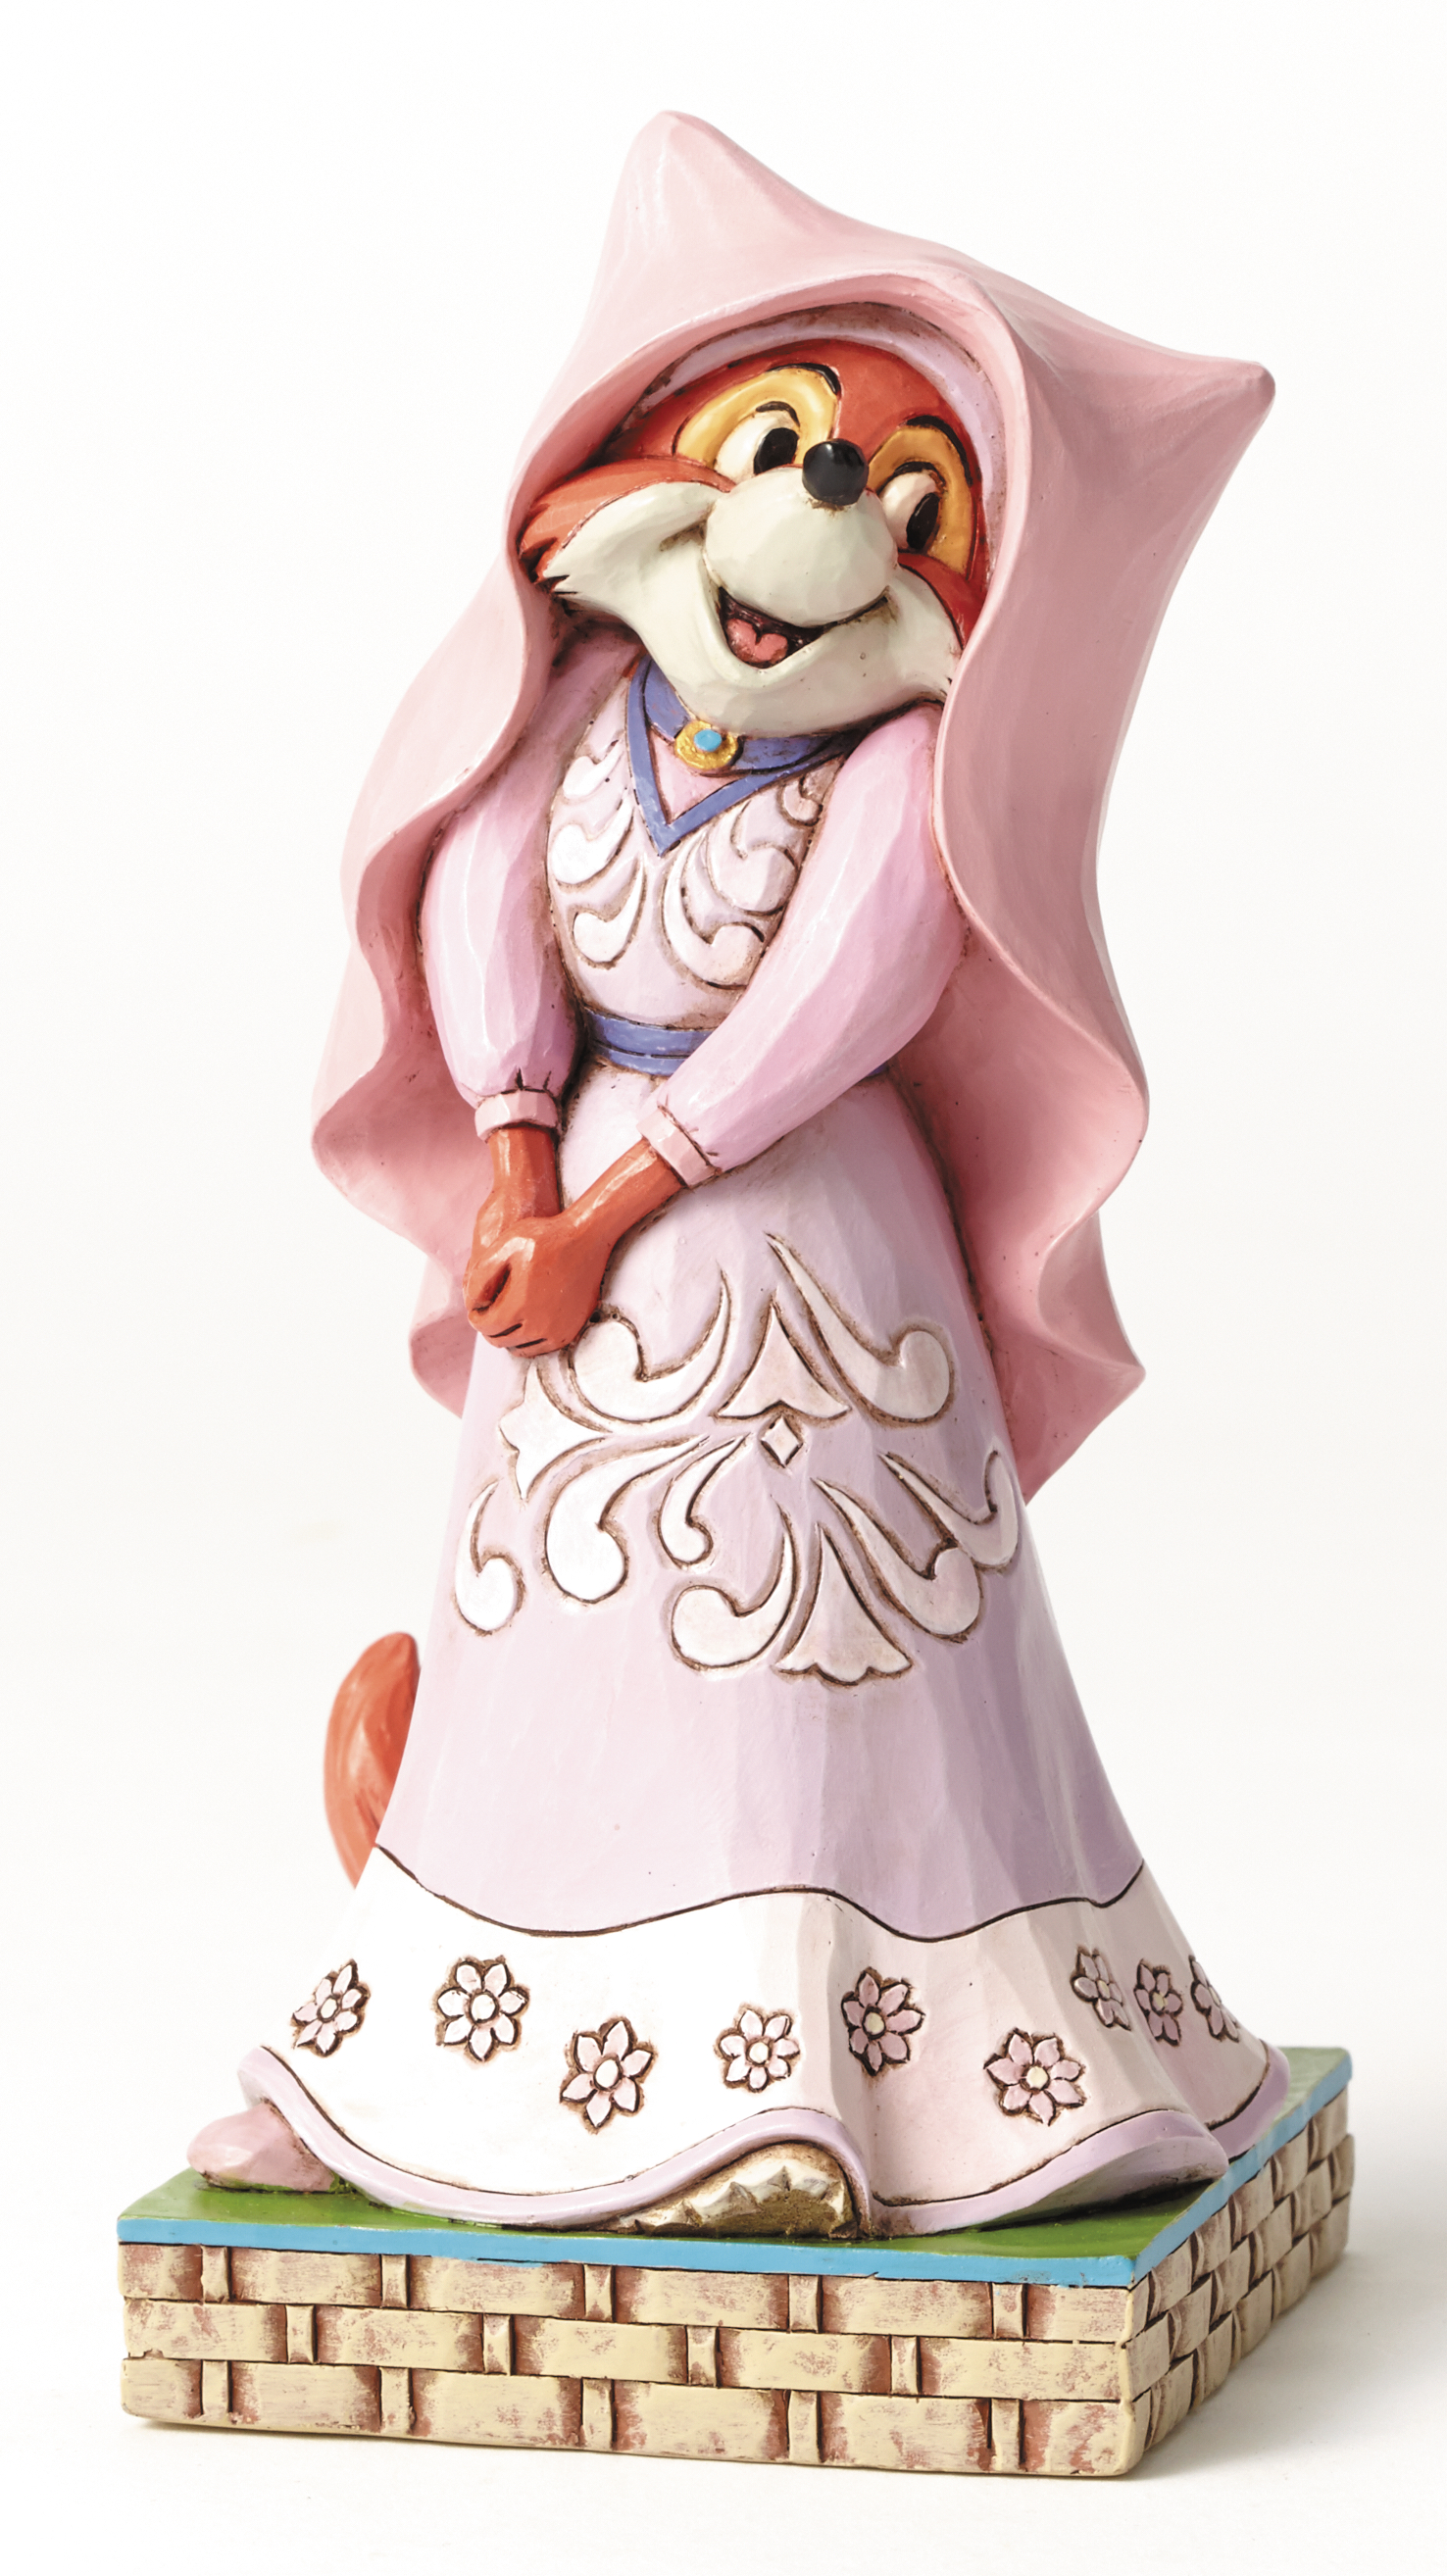 DISNEY TRADITIONS MAID MARION FIG